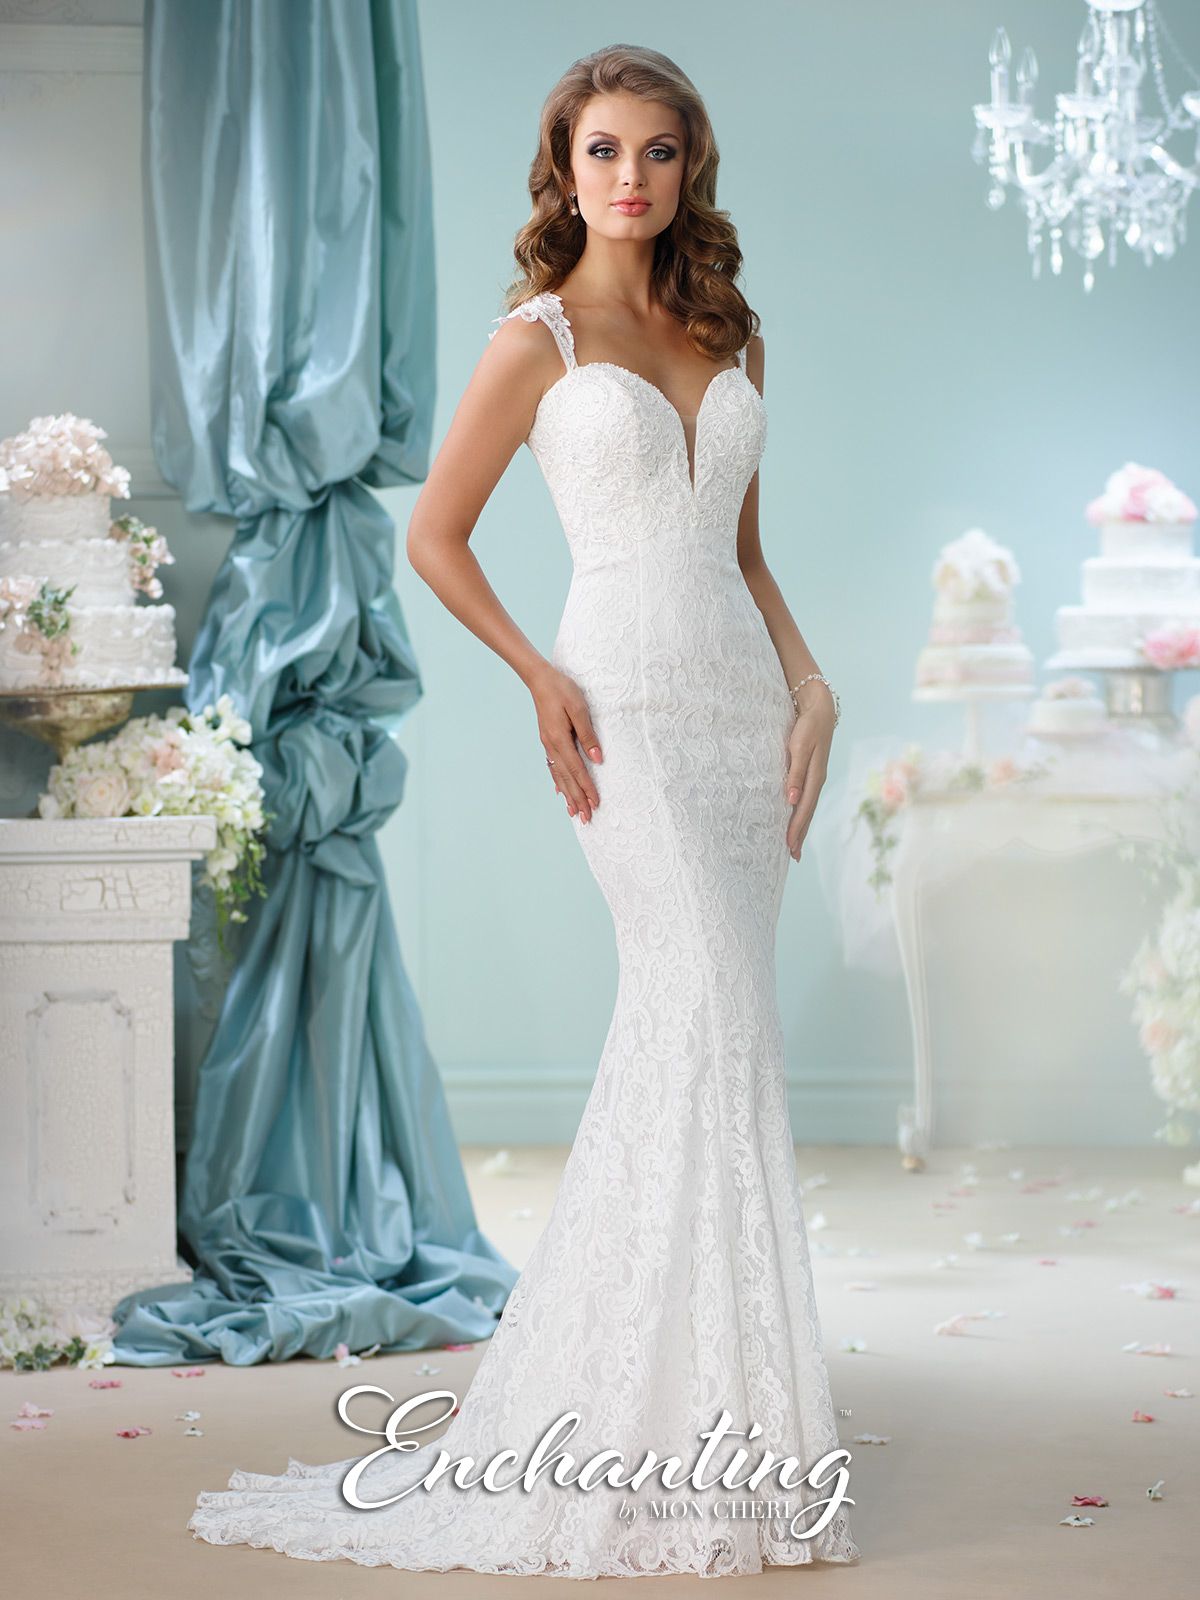 Shoulder Straps Wedding Dress by Enchanting 116140 | Wedding Gowns ...